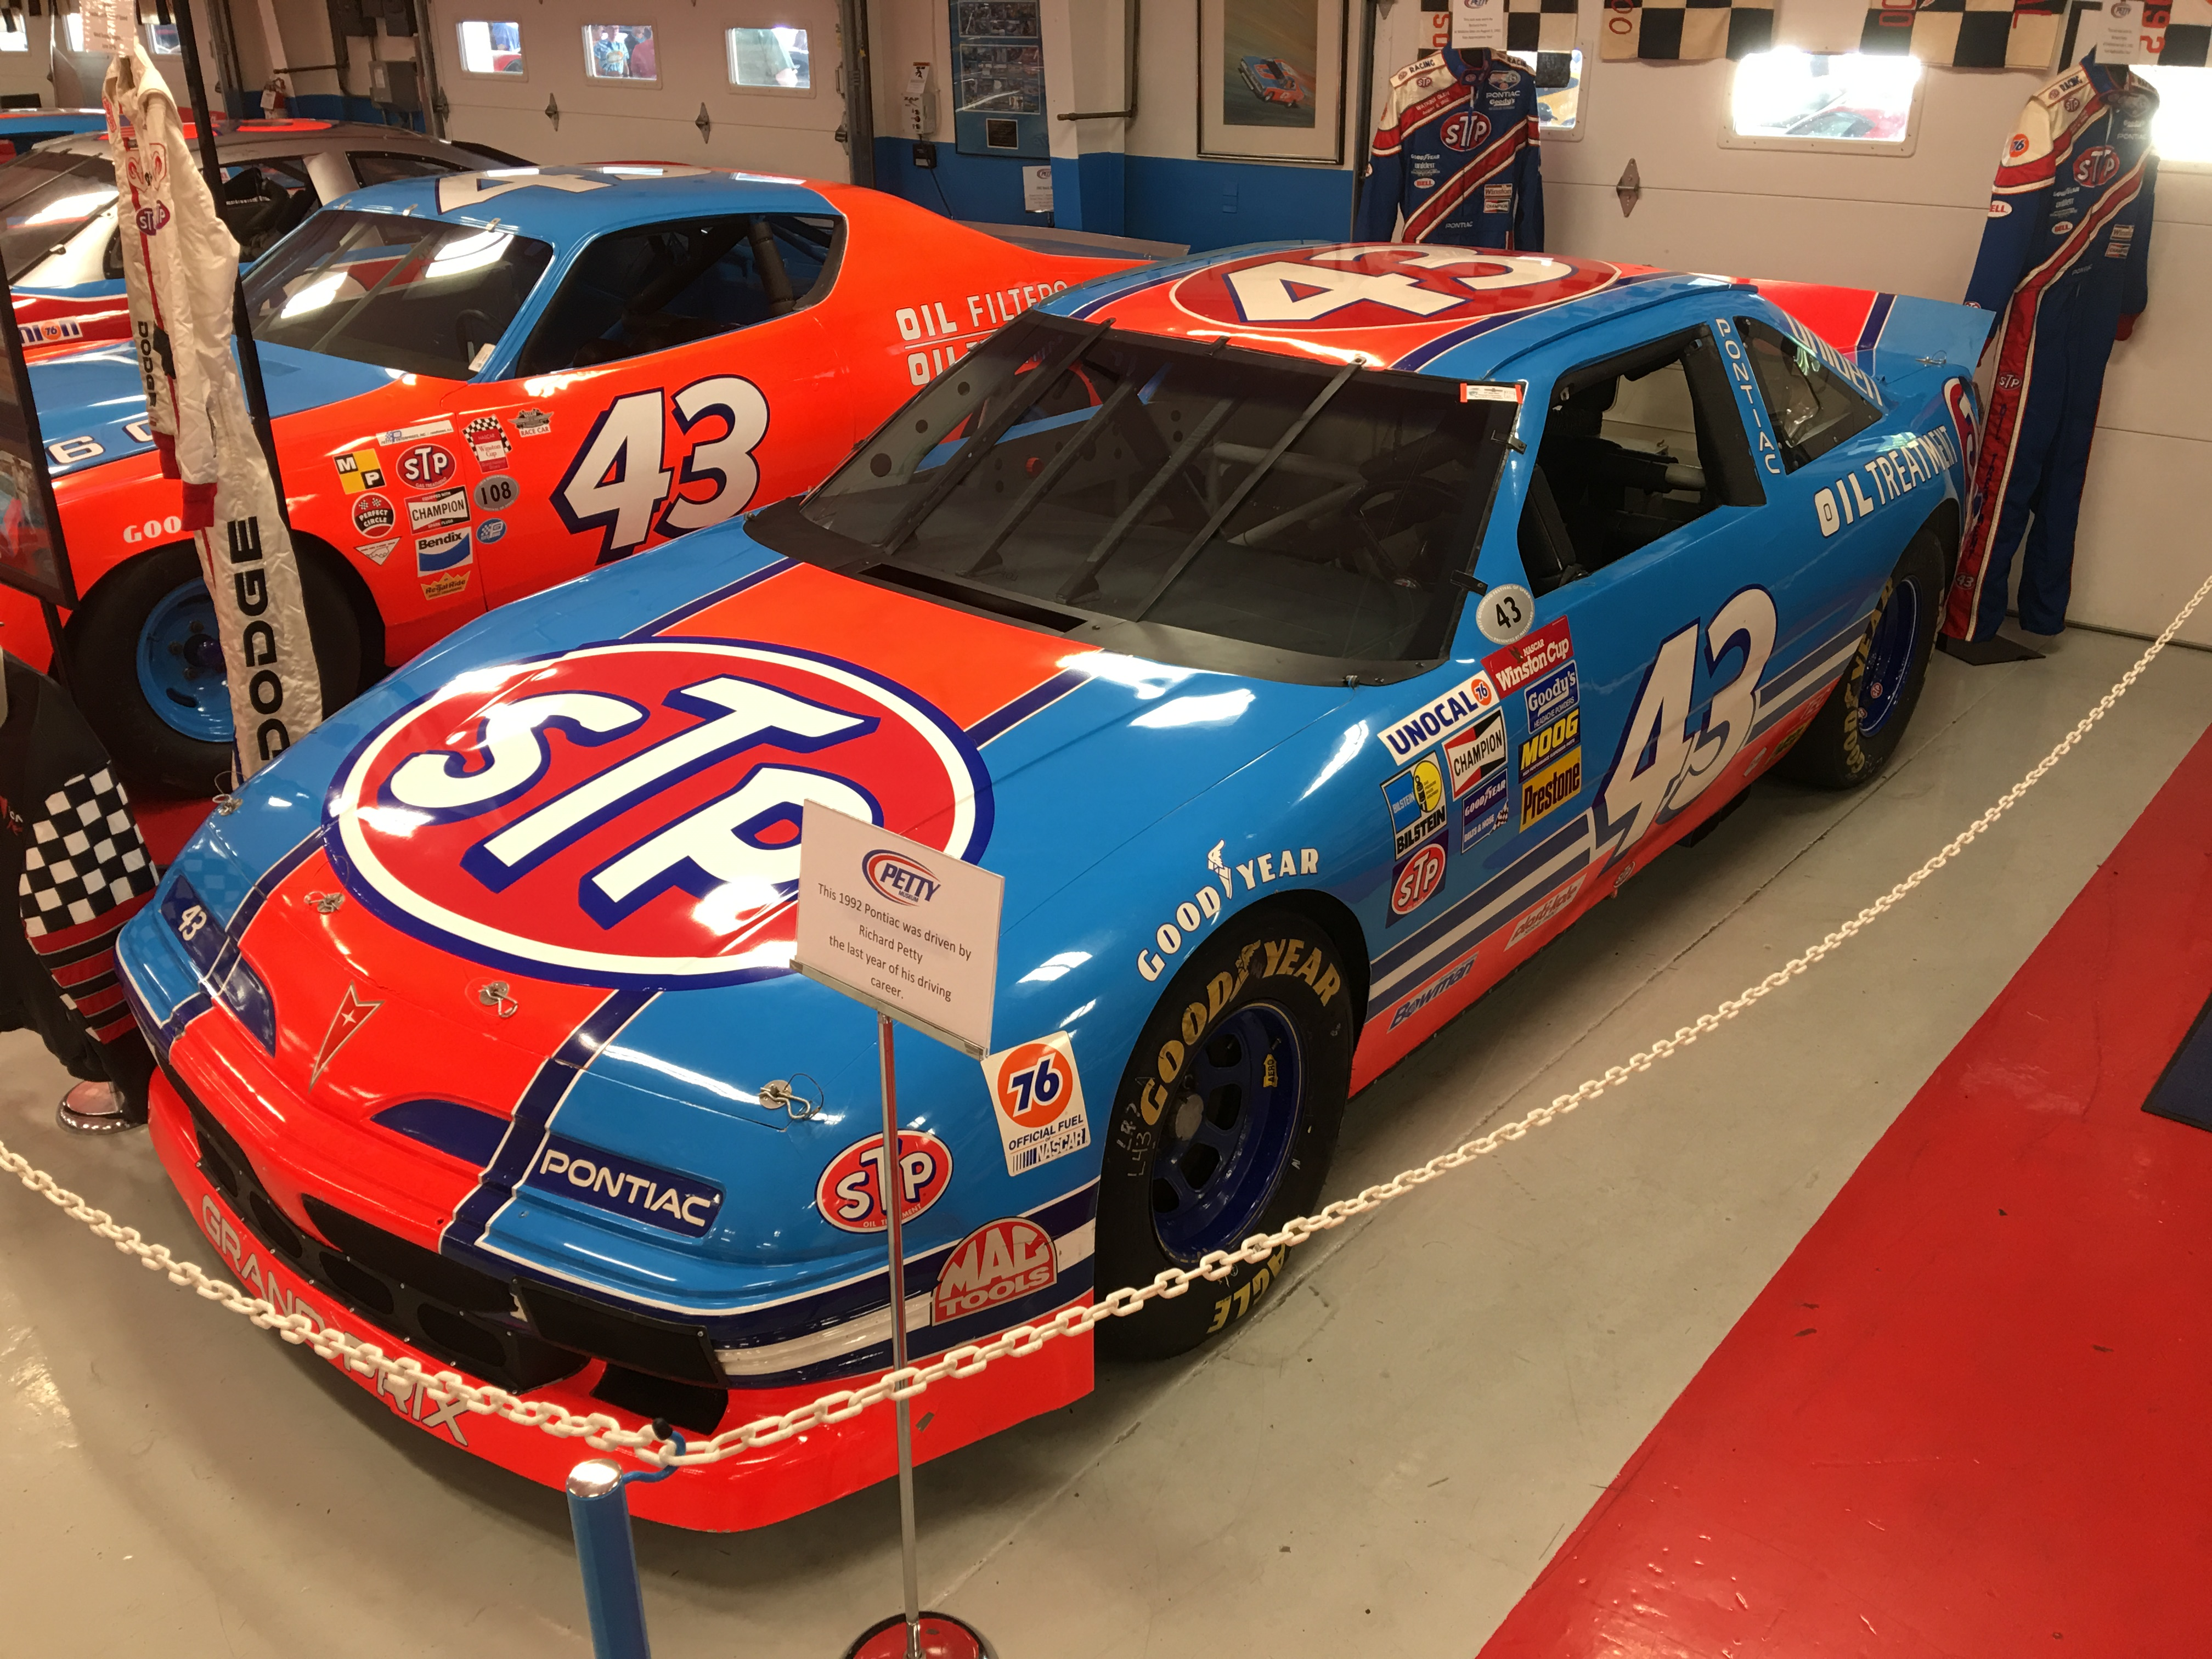 Rk Motors Visits The Petty Museum And Petty S Garage Rk